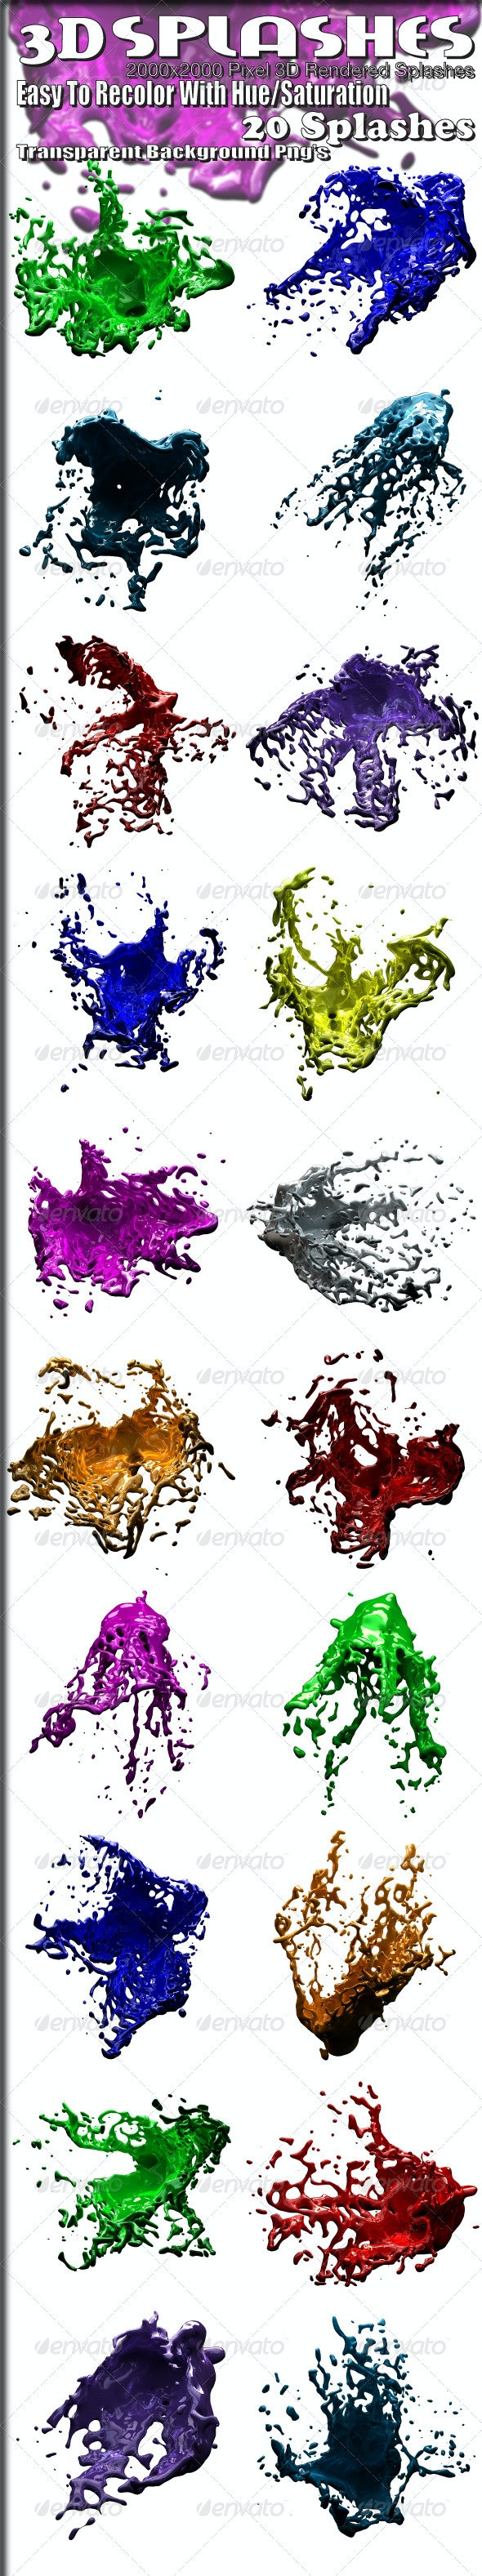 3D Rendered Splashes - Abstract 3D Renders